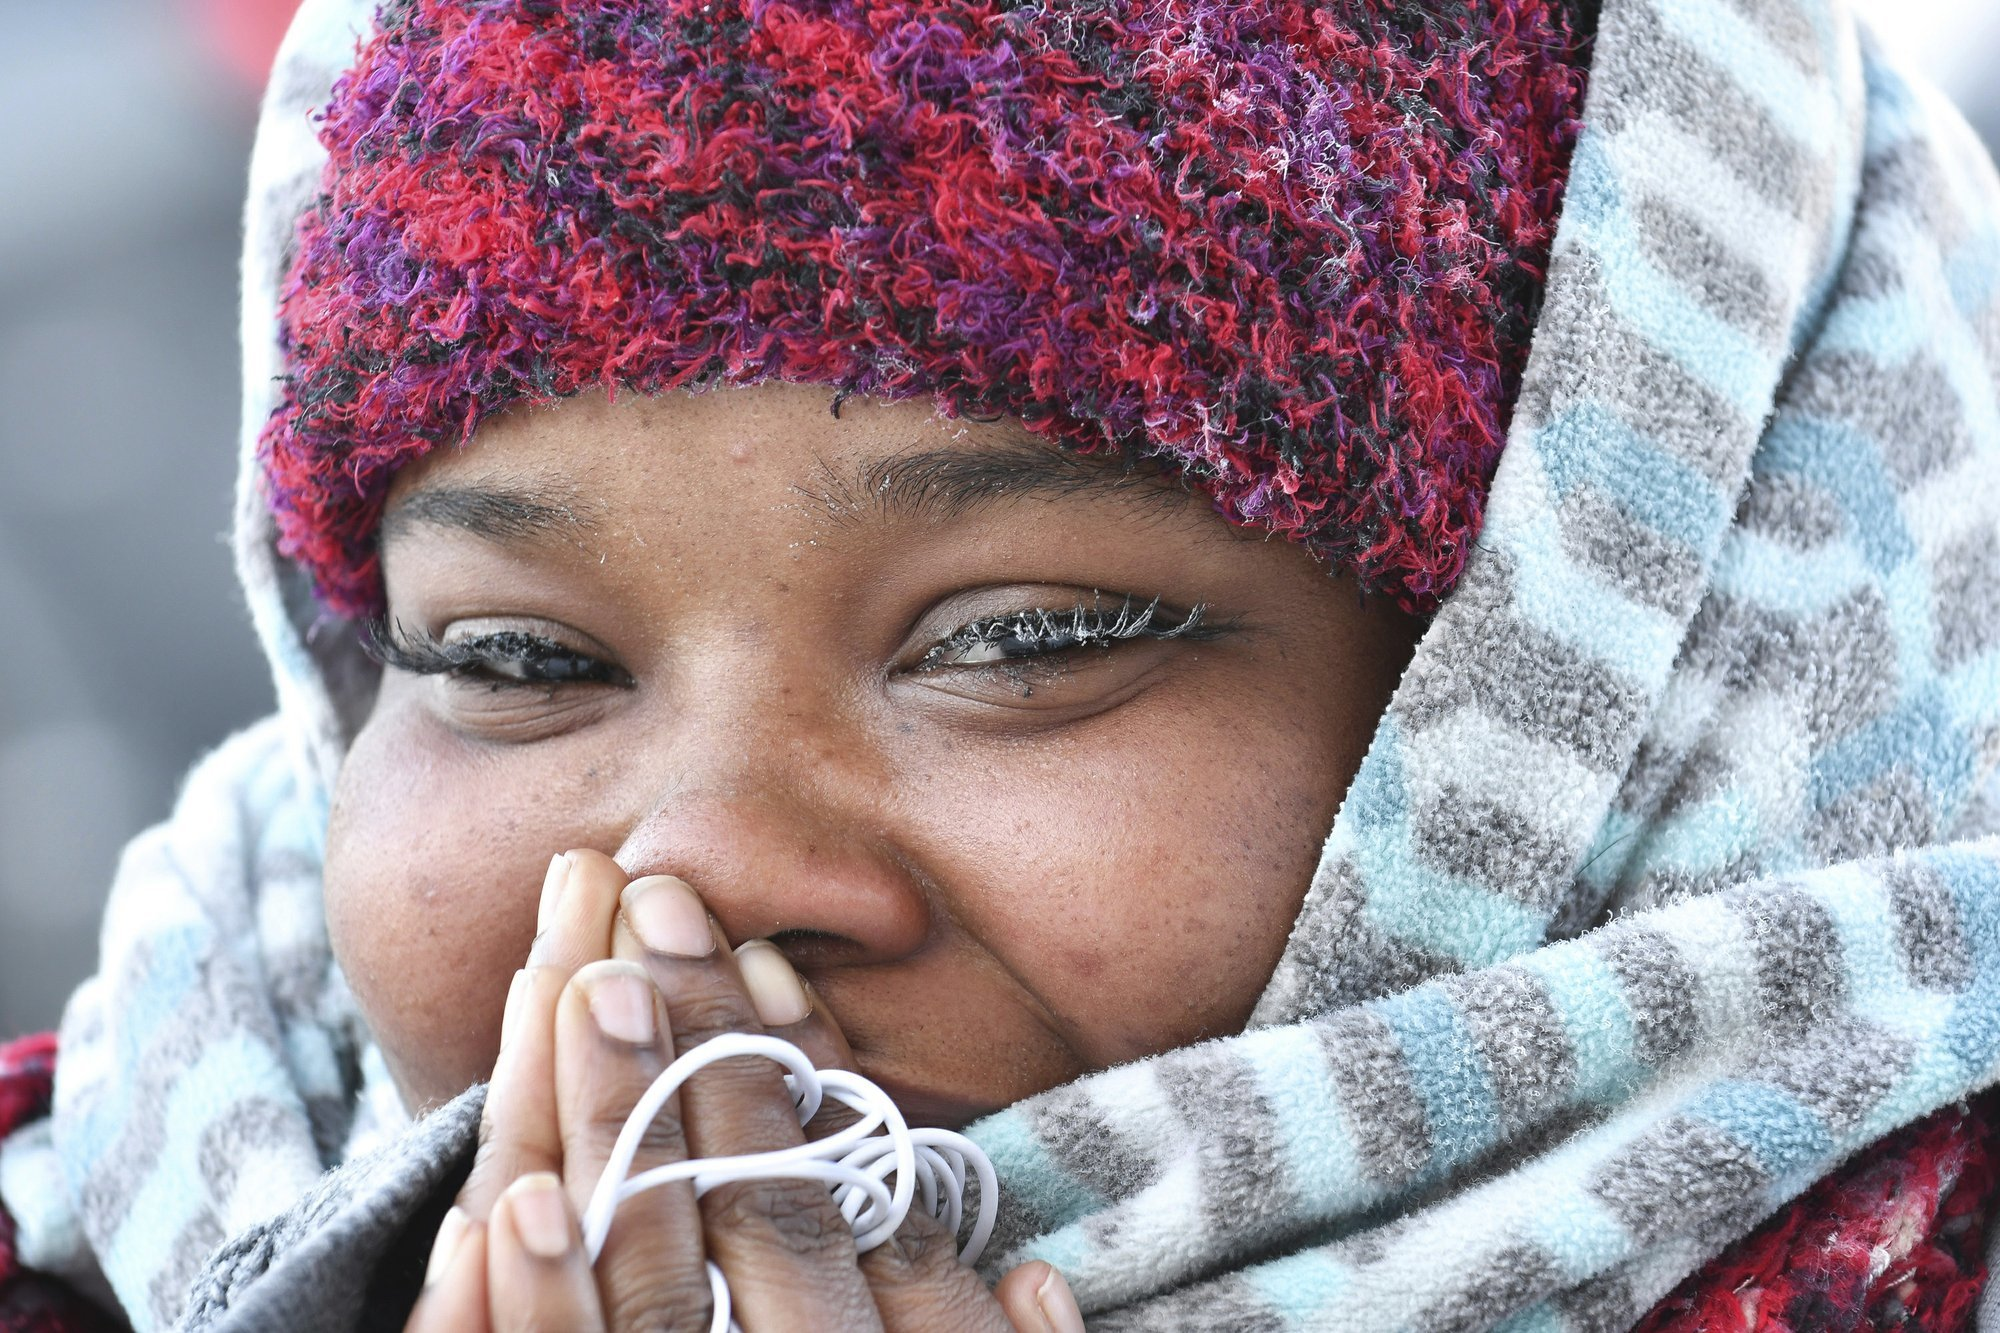 Ice forms on the eyelashes of Aubreyanne Edwards, of Rock Island, Ill., as she braves minus 27 windchill. — AP